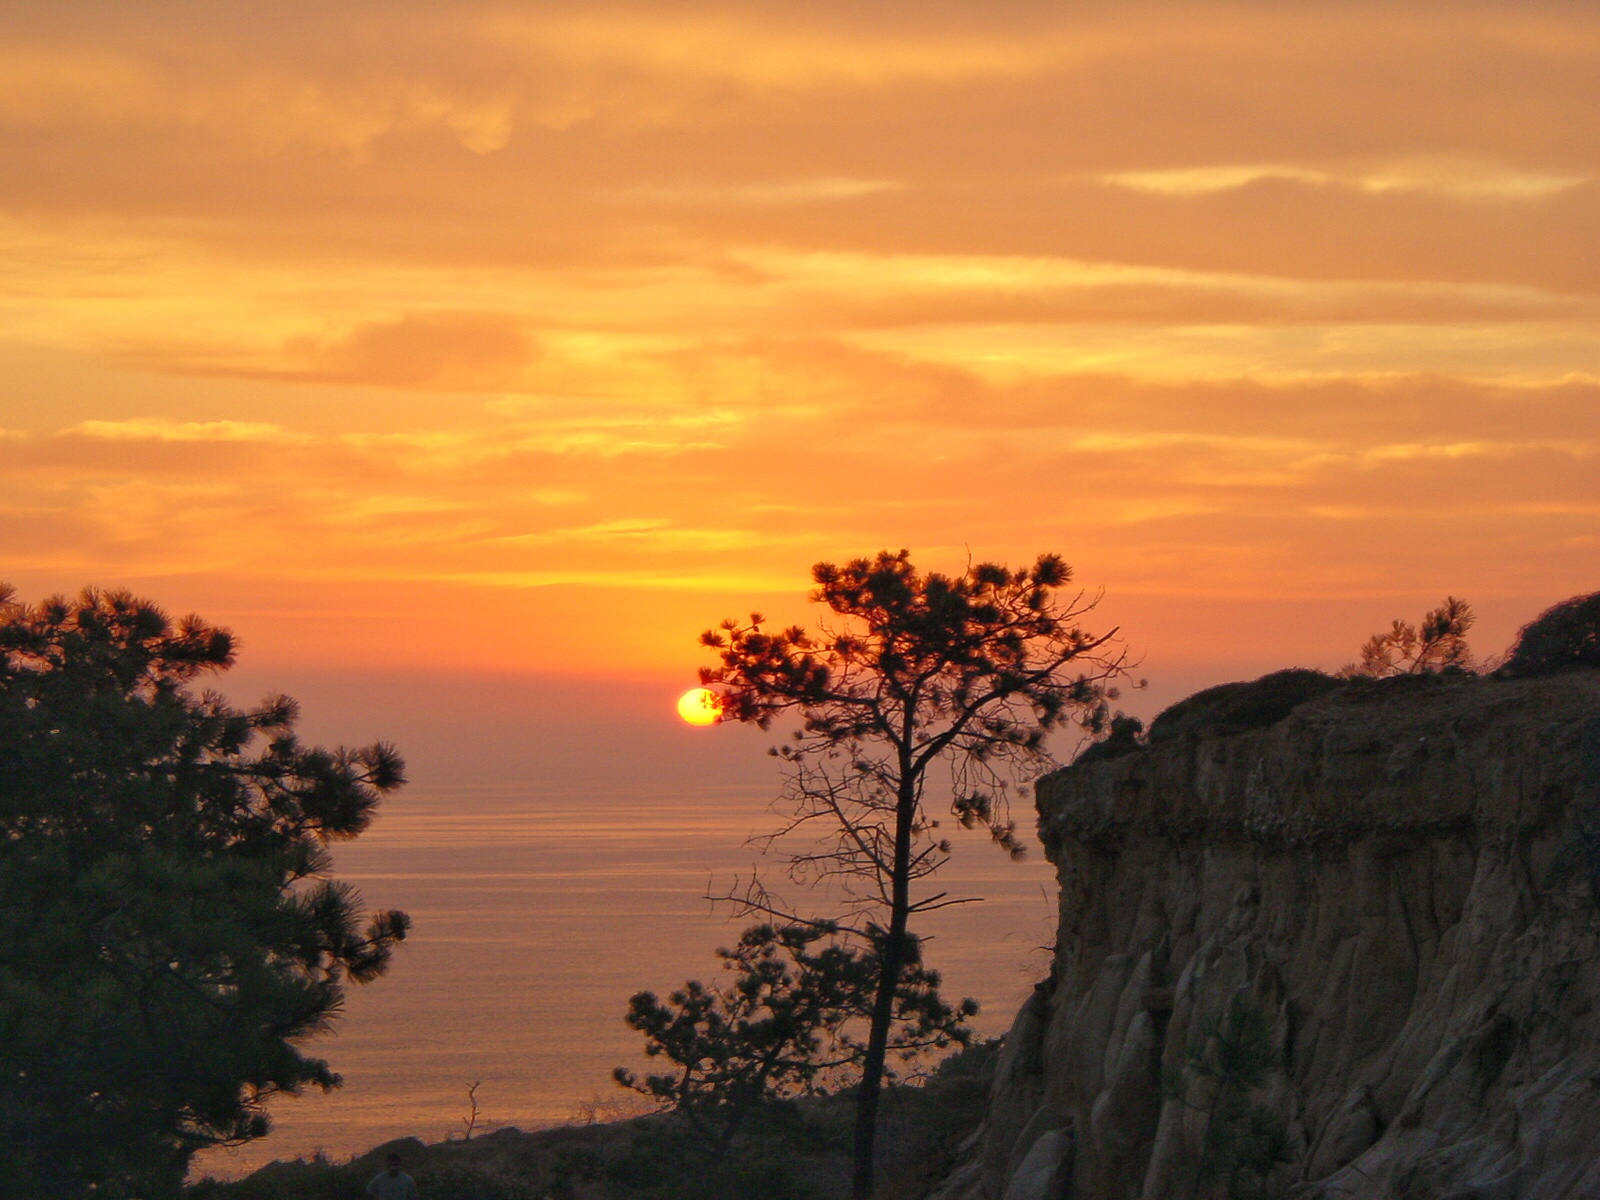 Torrey Pines State Reserve has the rarest trees in North America, and great sunset views.